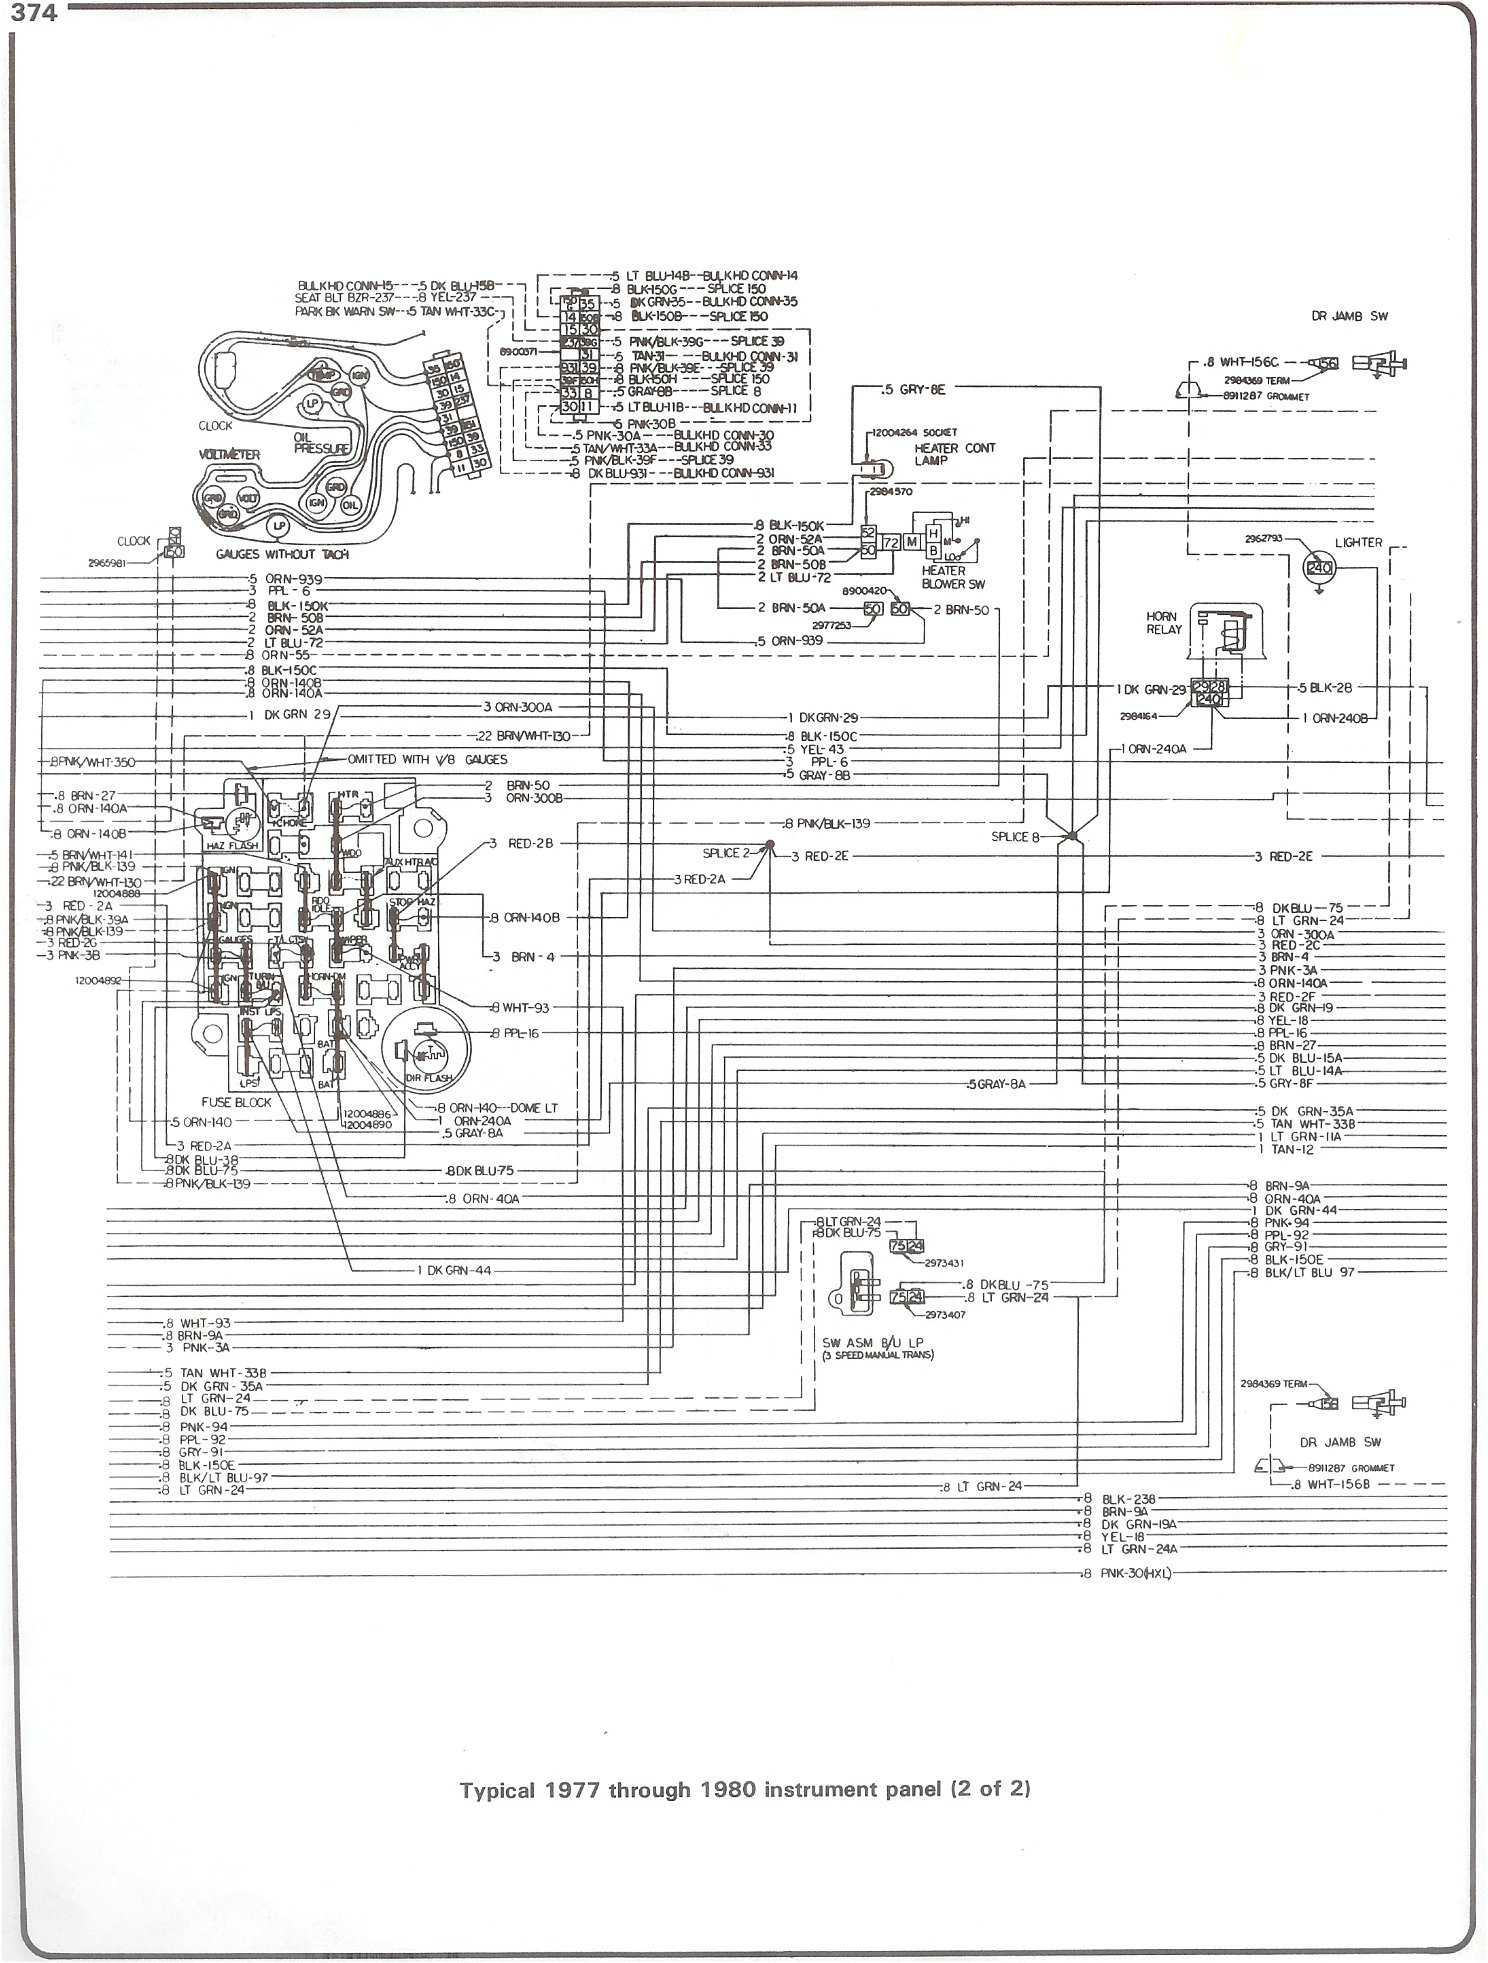 complete 73 87 wiring diagrams rh forum 73 87chevytrucks com 1983 chevy truck stereo wiring diagram 83 chevy truck wiring diagram